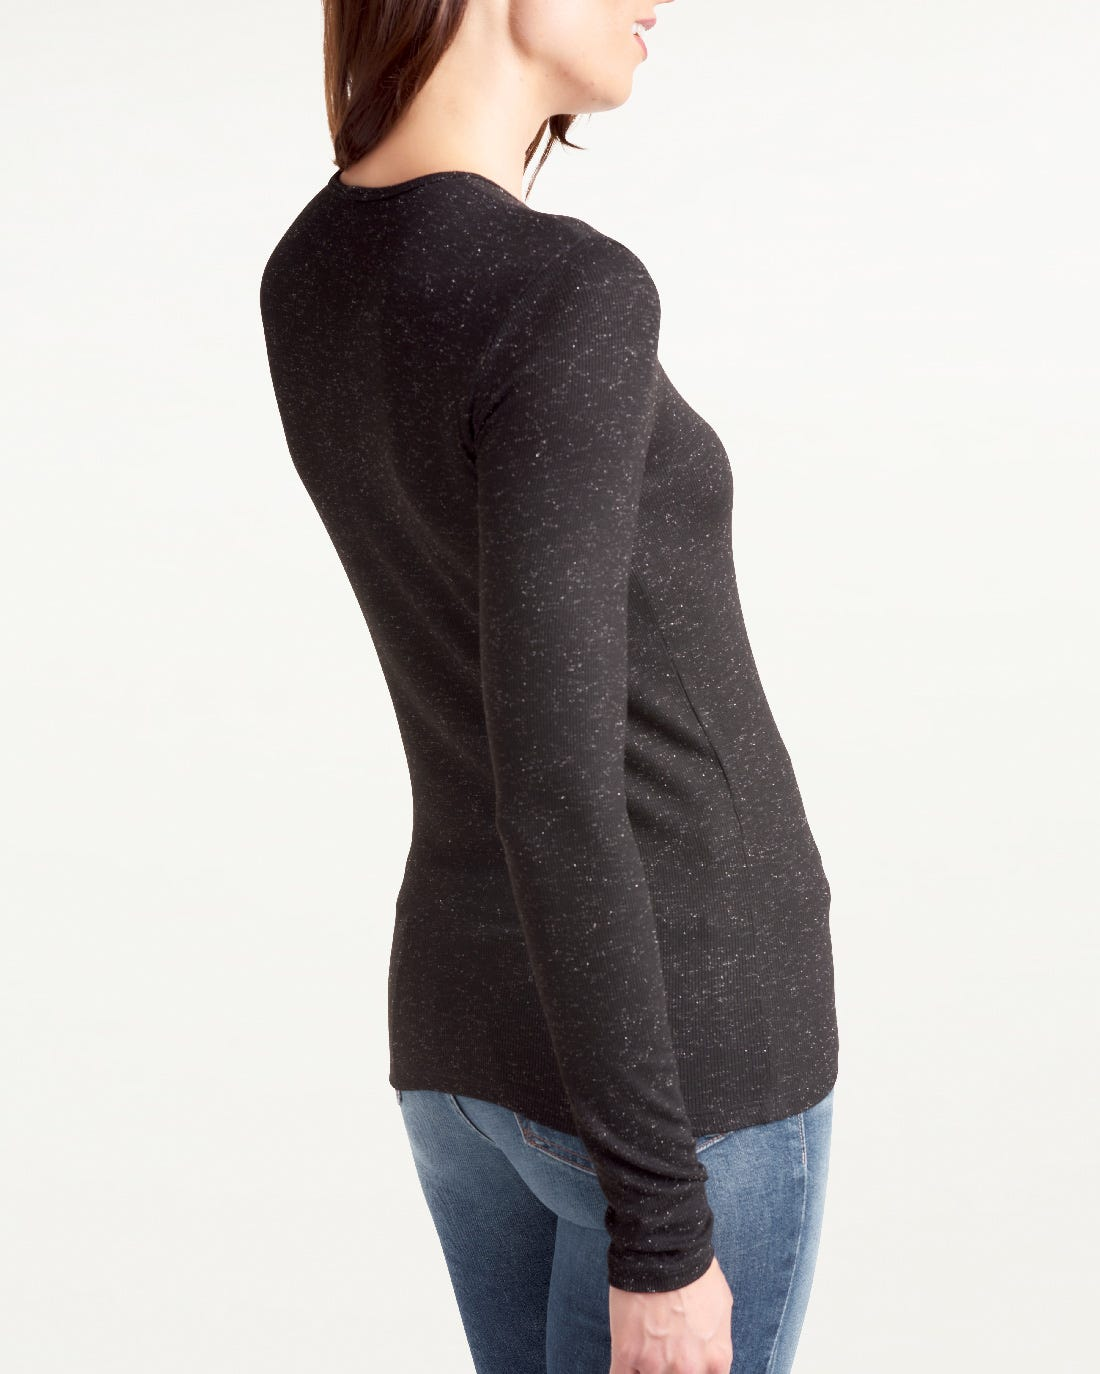 Glimmer Long Sleeve Shirt in Black